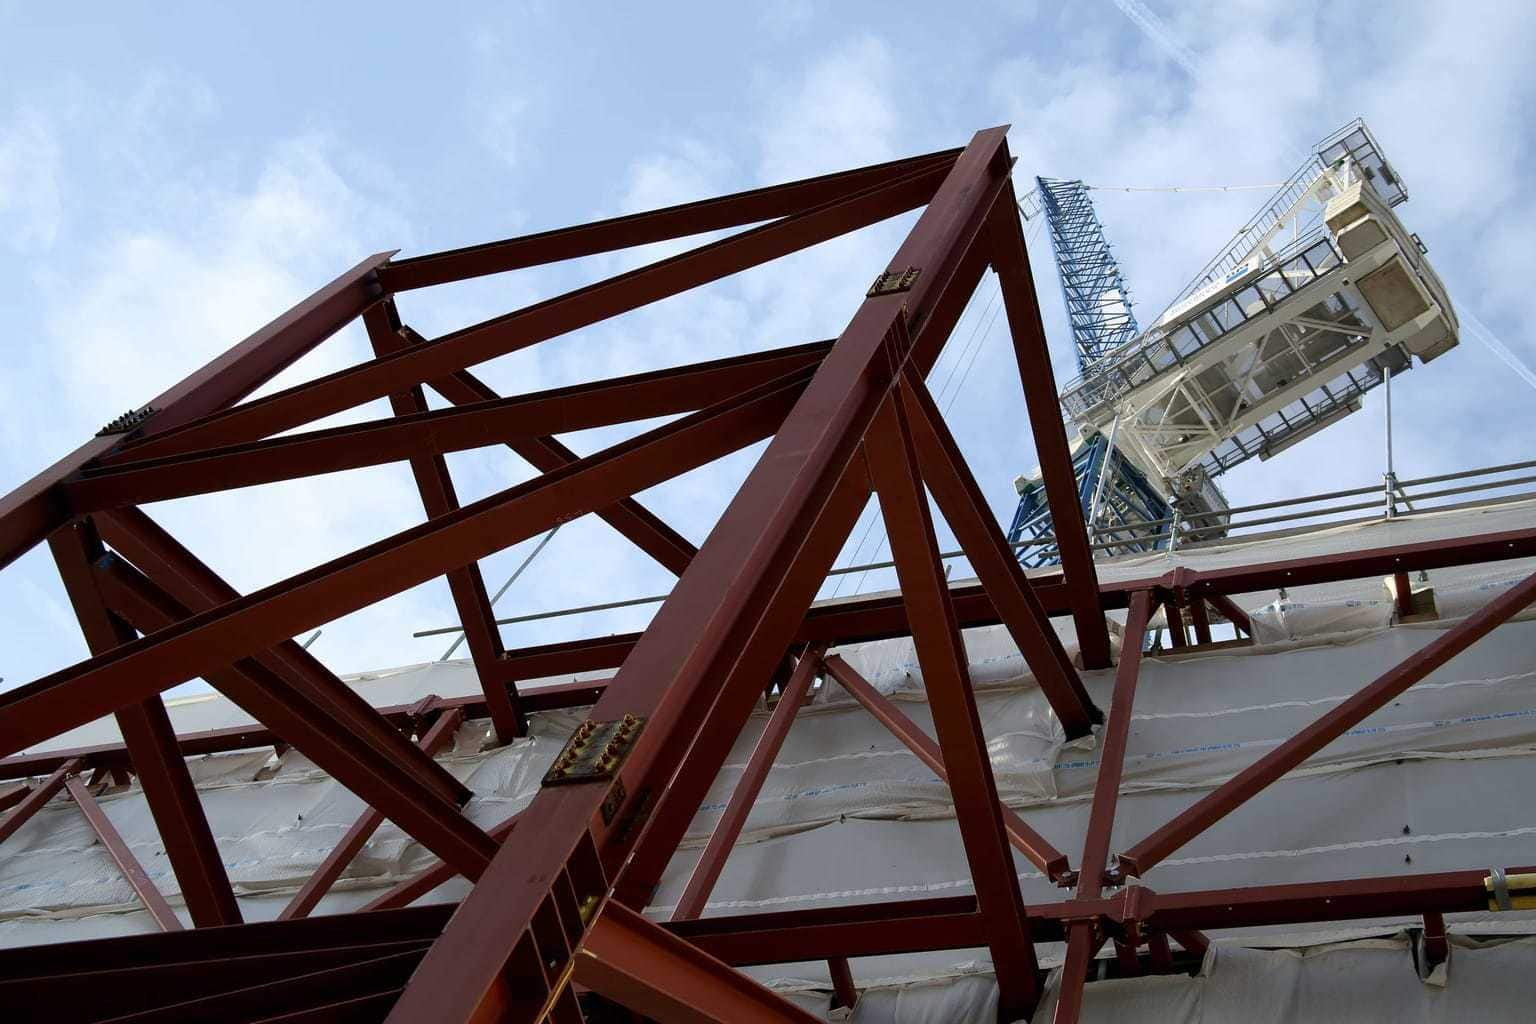 I WAS COMMISION BY BROOKFIELD MULTIPLEX ONE OF THE WORLDS LARGEST CONSTRUCTION COMPANIES TO TAKE A SERIES OF IMAGES IN THE CITY OF LONDON.  By Dpi Photography.